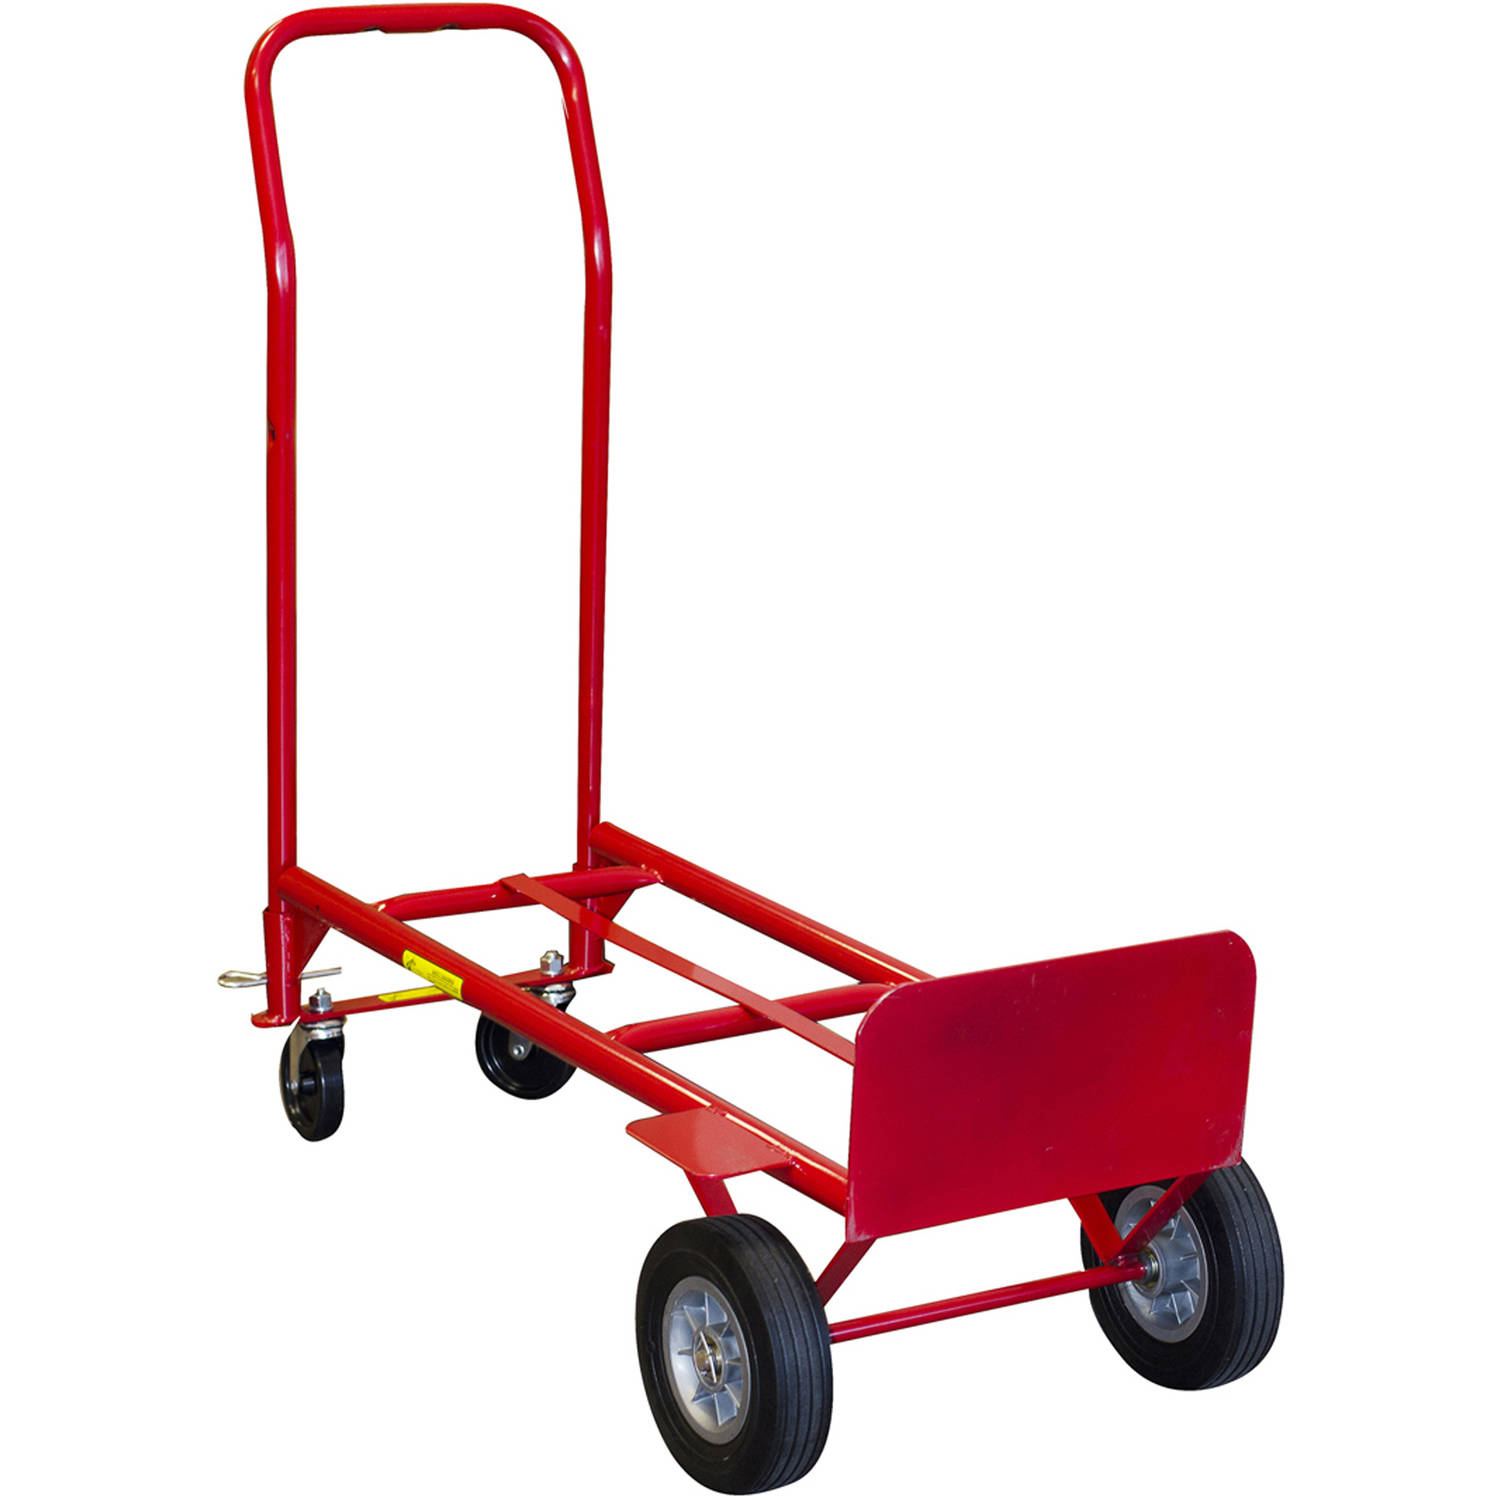 milwaukee convertible hand truck image 2 of 4 - Convertible Hand Truck